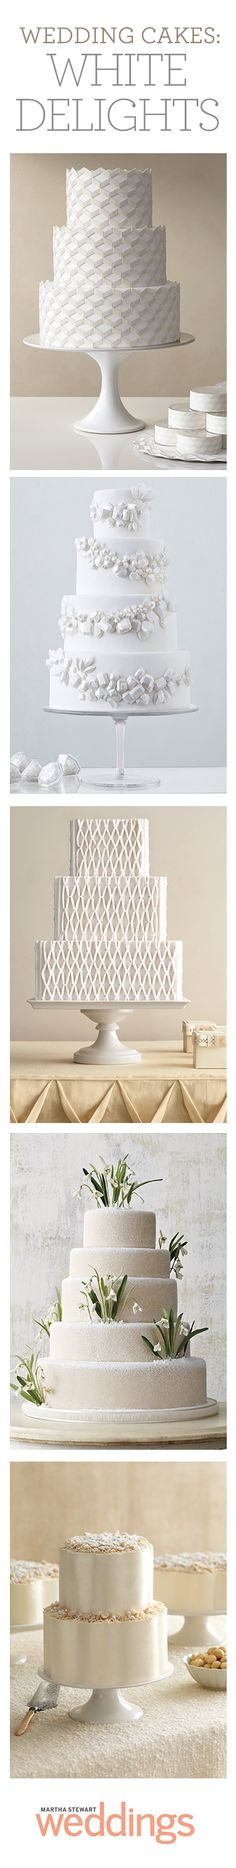 Crisp and classic white wedding cakes from our latest issue!